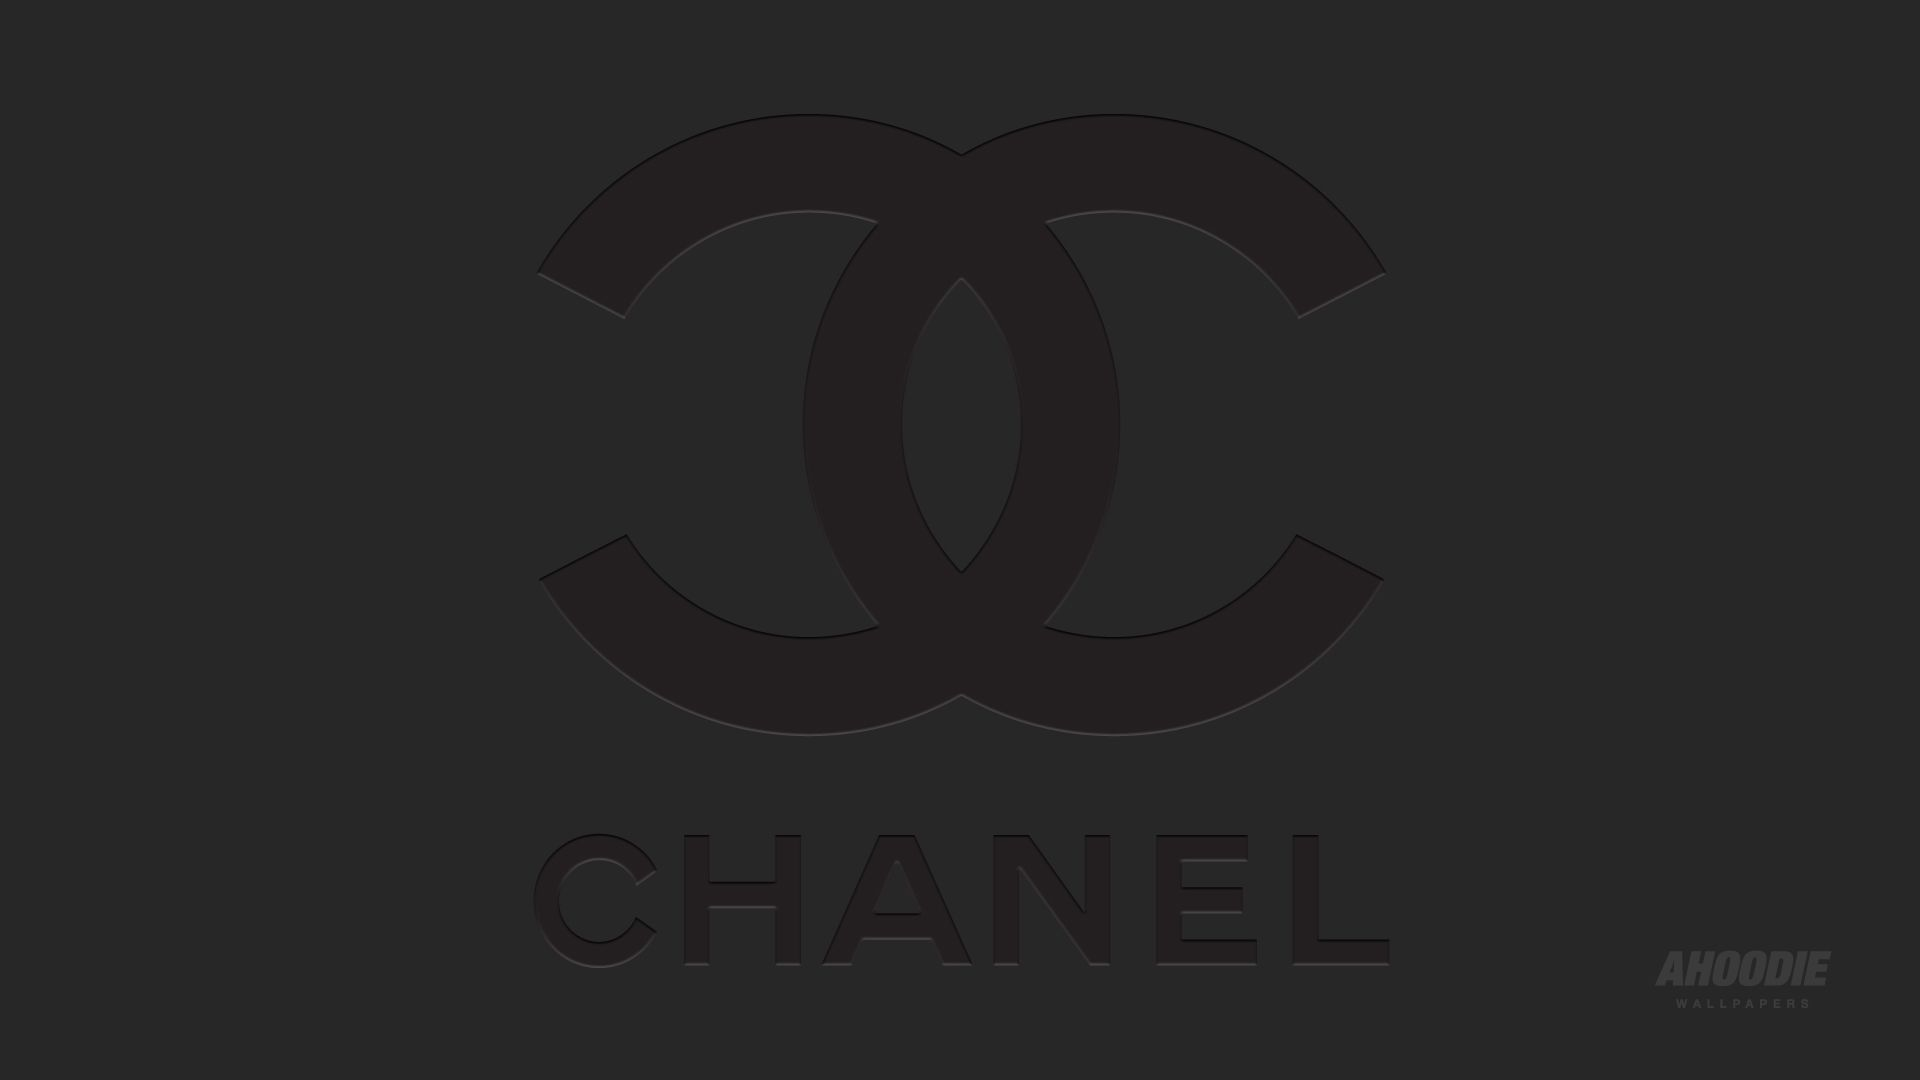 Chanel Computer Wallpapers Top Free Chanel Computer